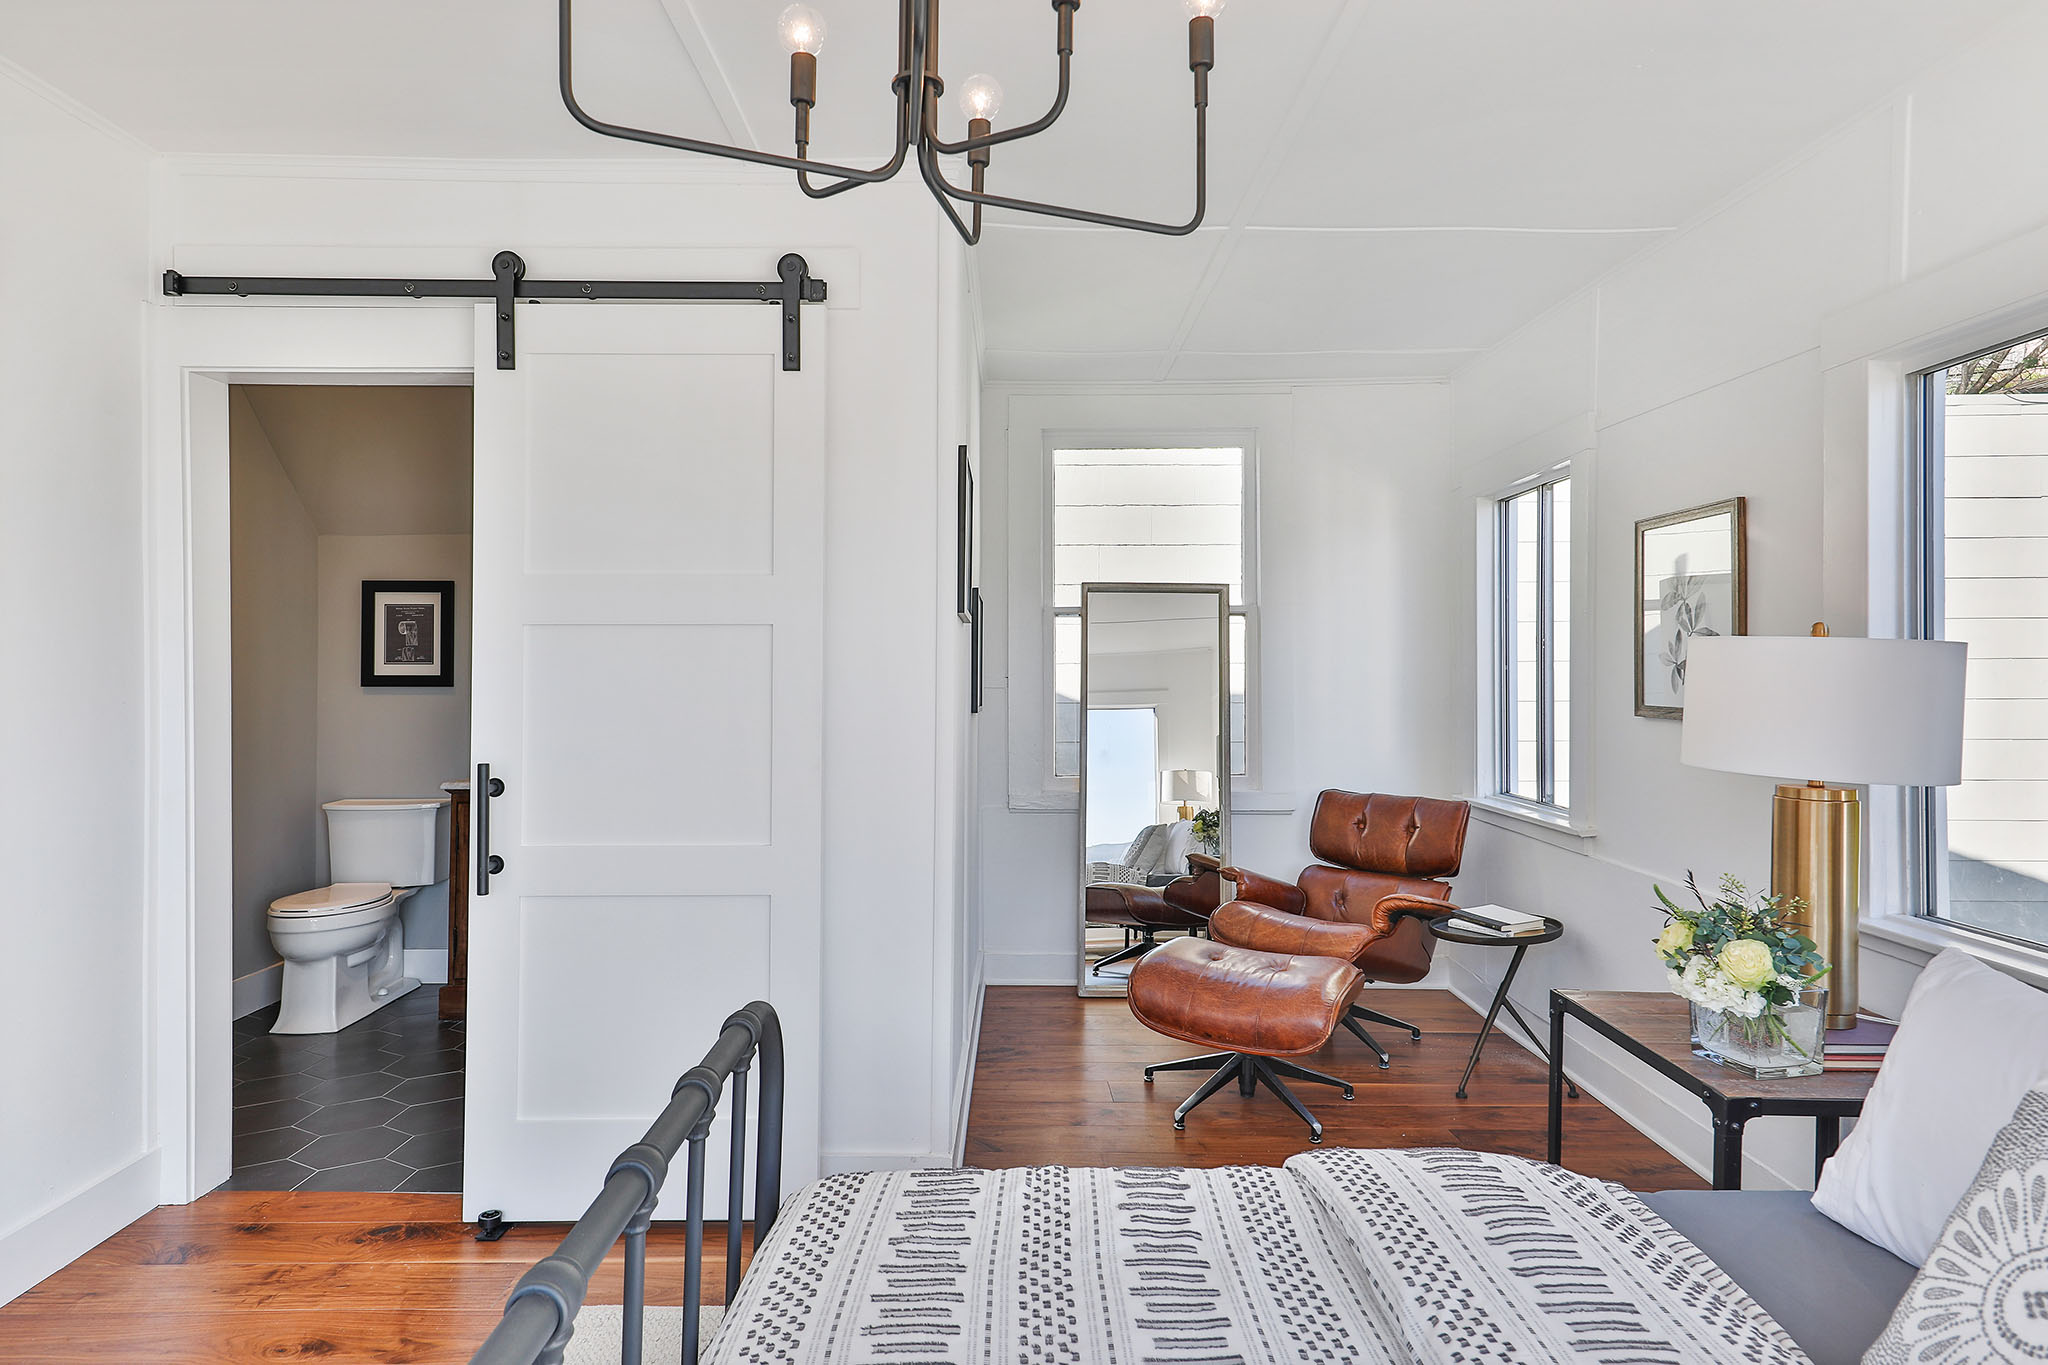 SF Real Estate - Master Bedroom with View into Bathroom